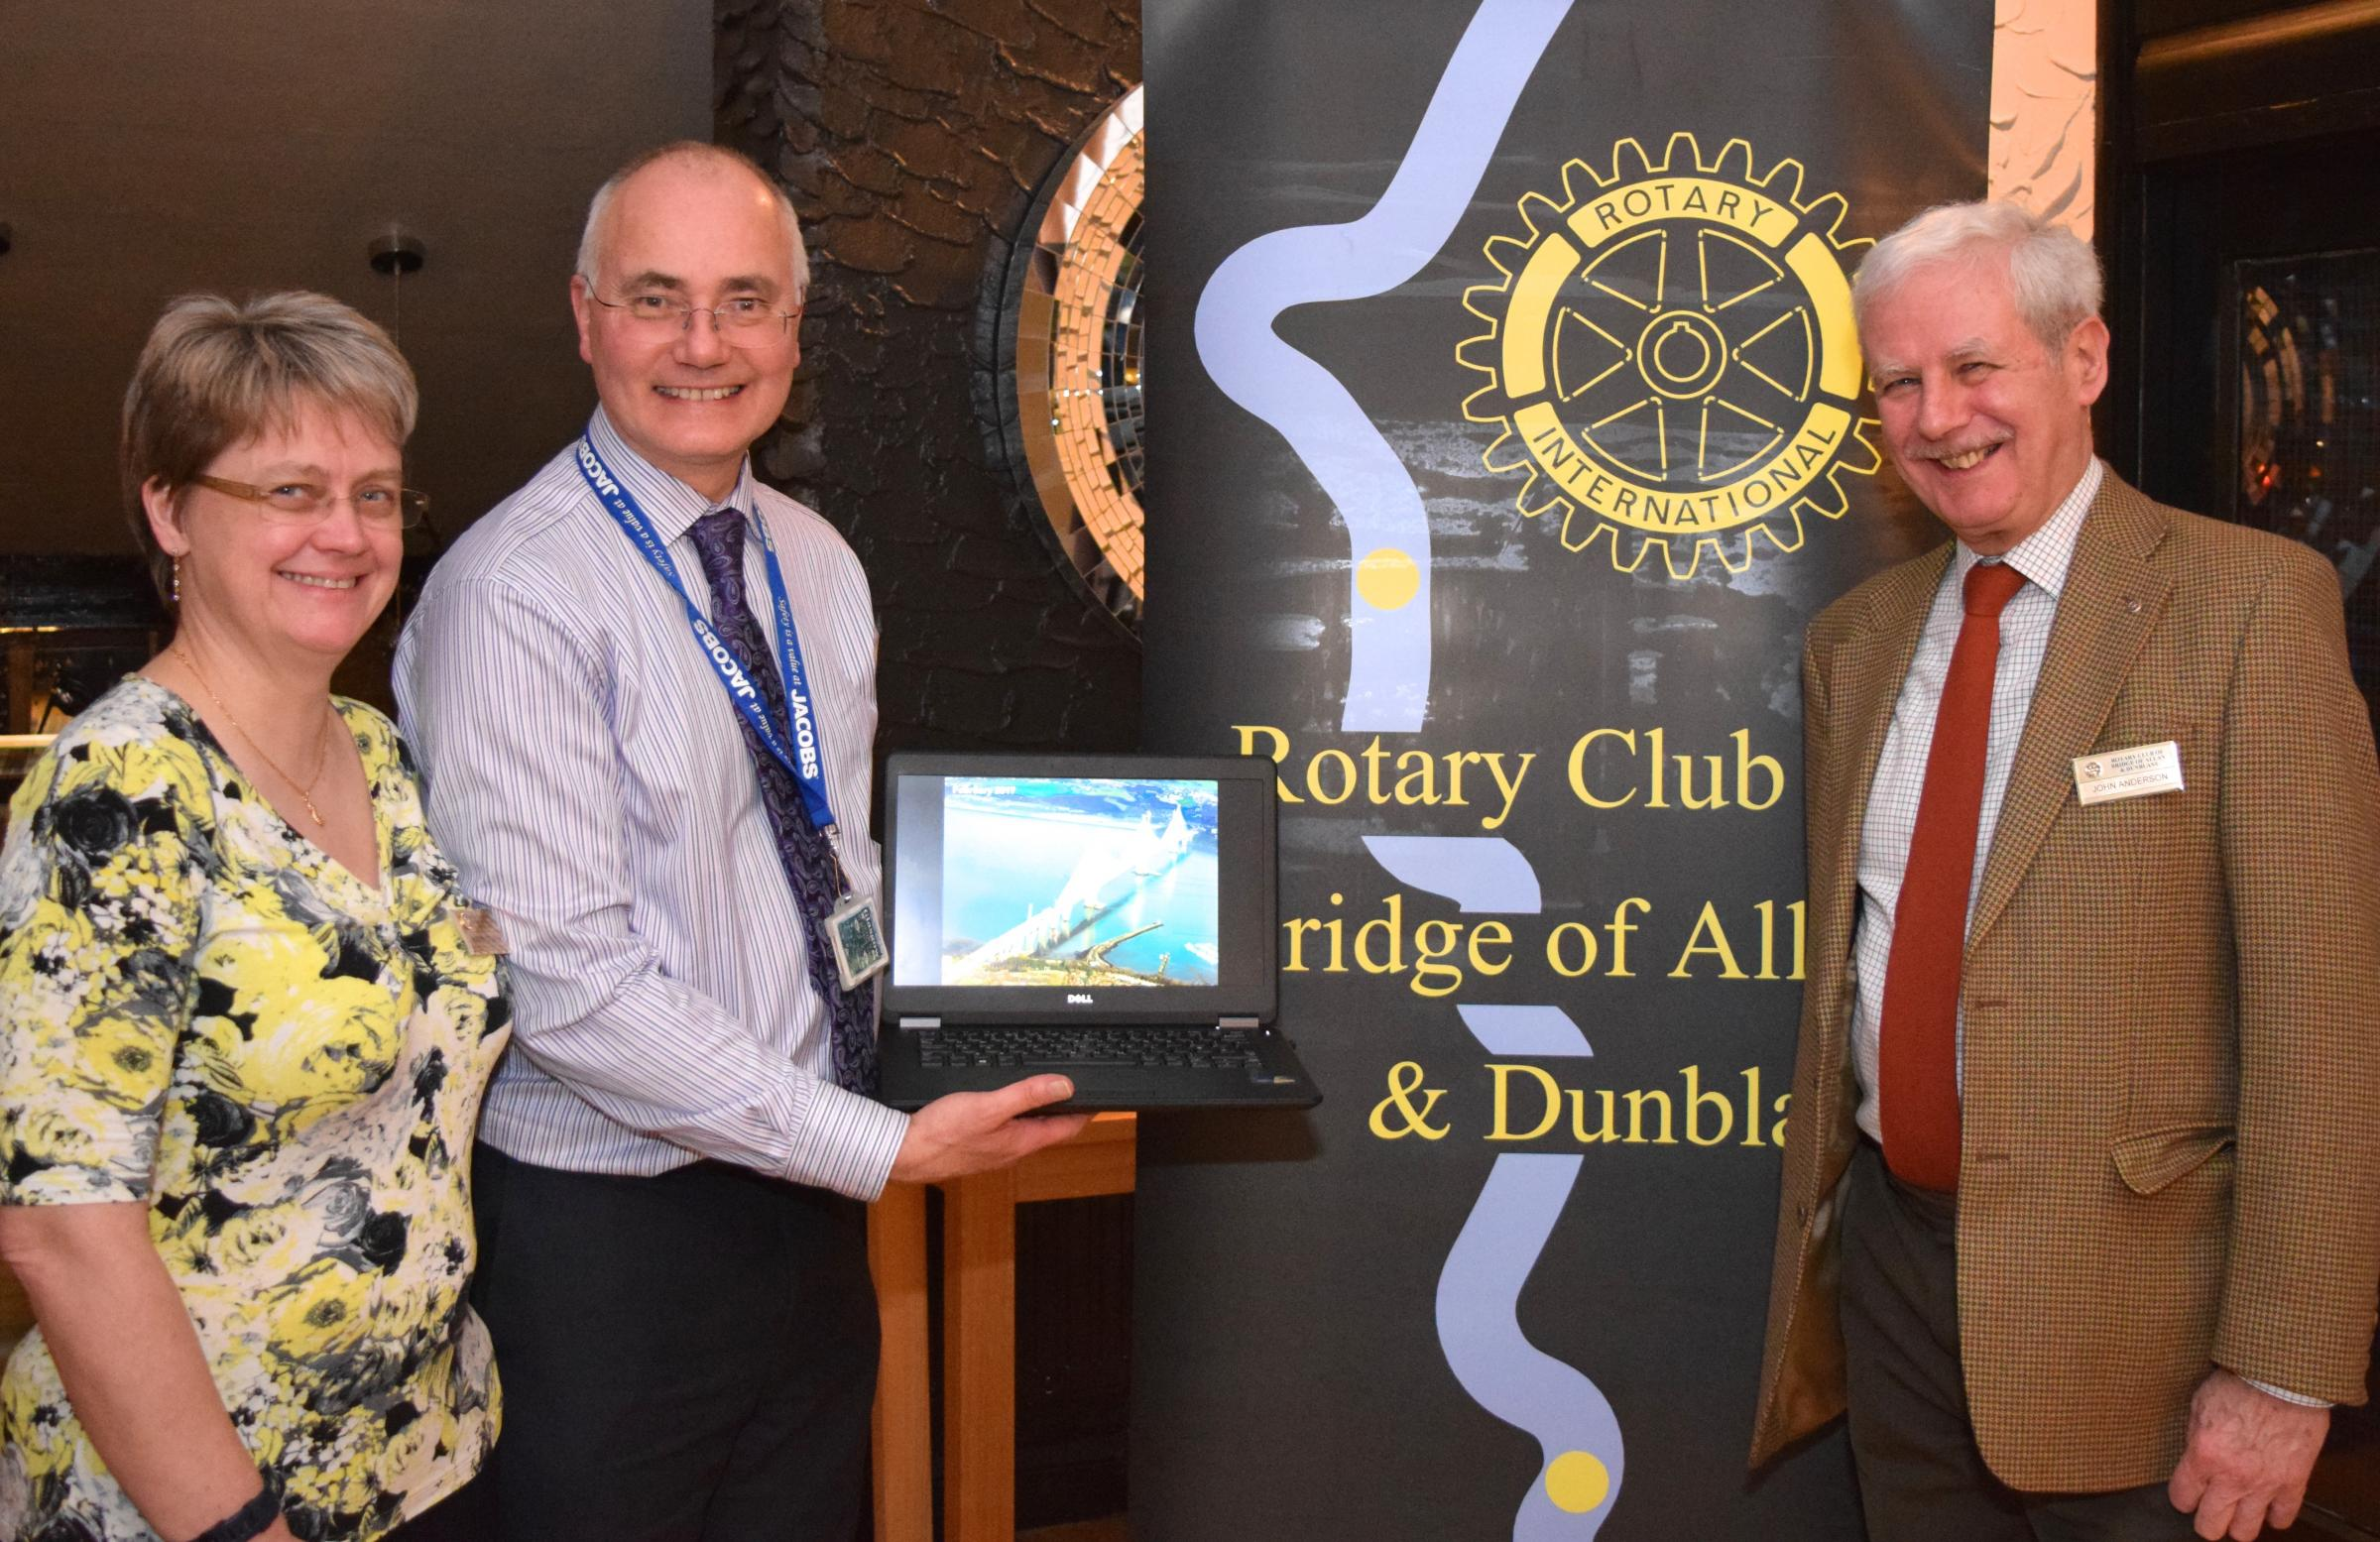 Alastair Templeton (centre) gives a preview of his talk on the Queensferry Crossing to John Anderson, speaker's host, and Audrey Cooper